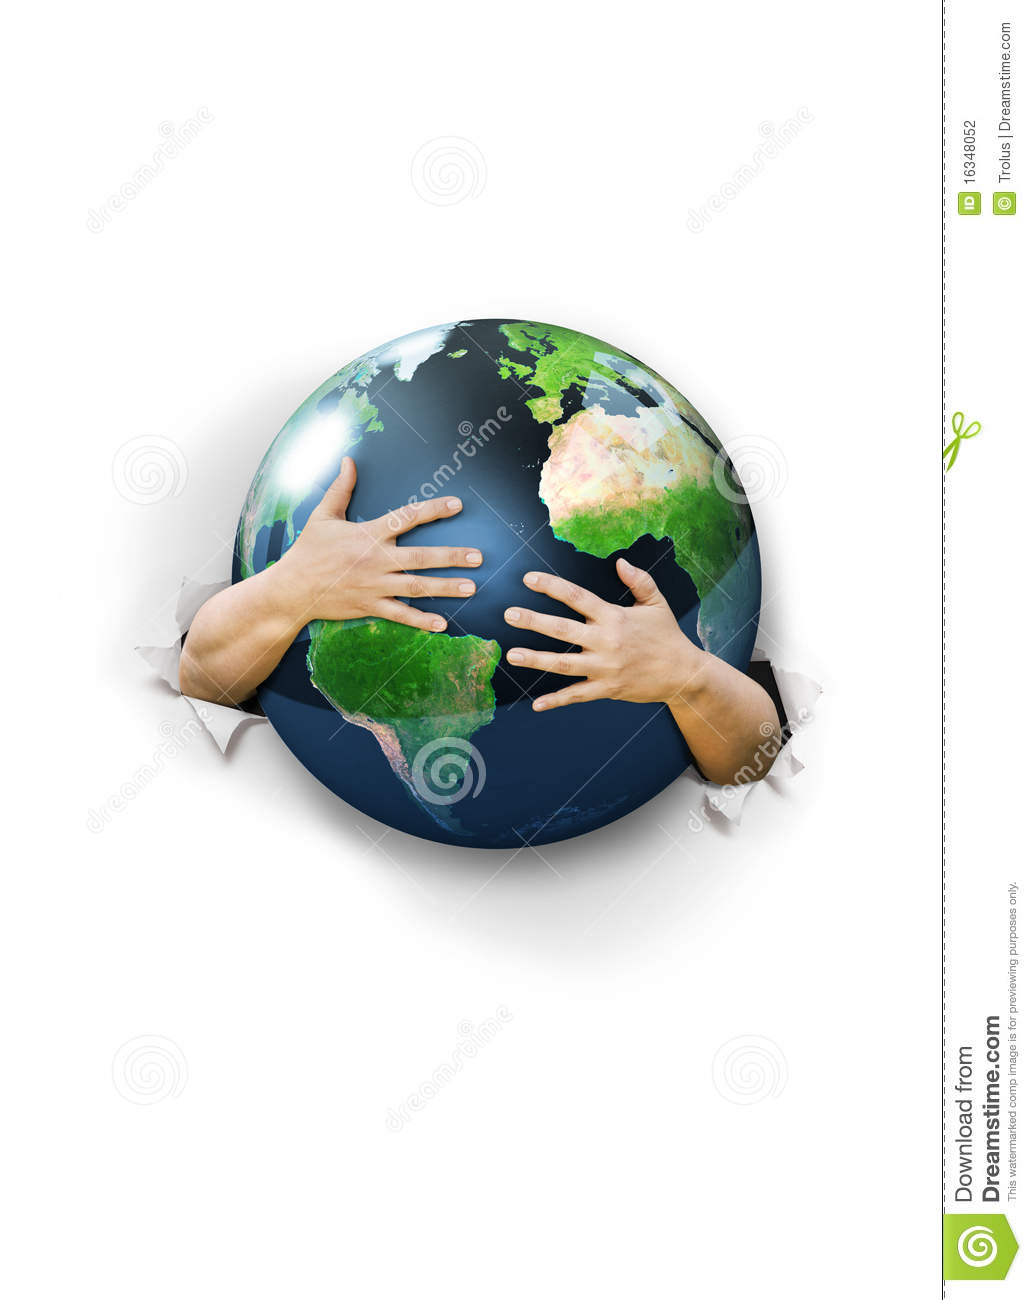 https://i0.wp.com/thumbs.dreamstime.com/z/hug-earth-16348052.jpg